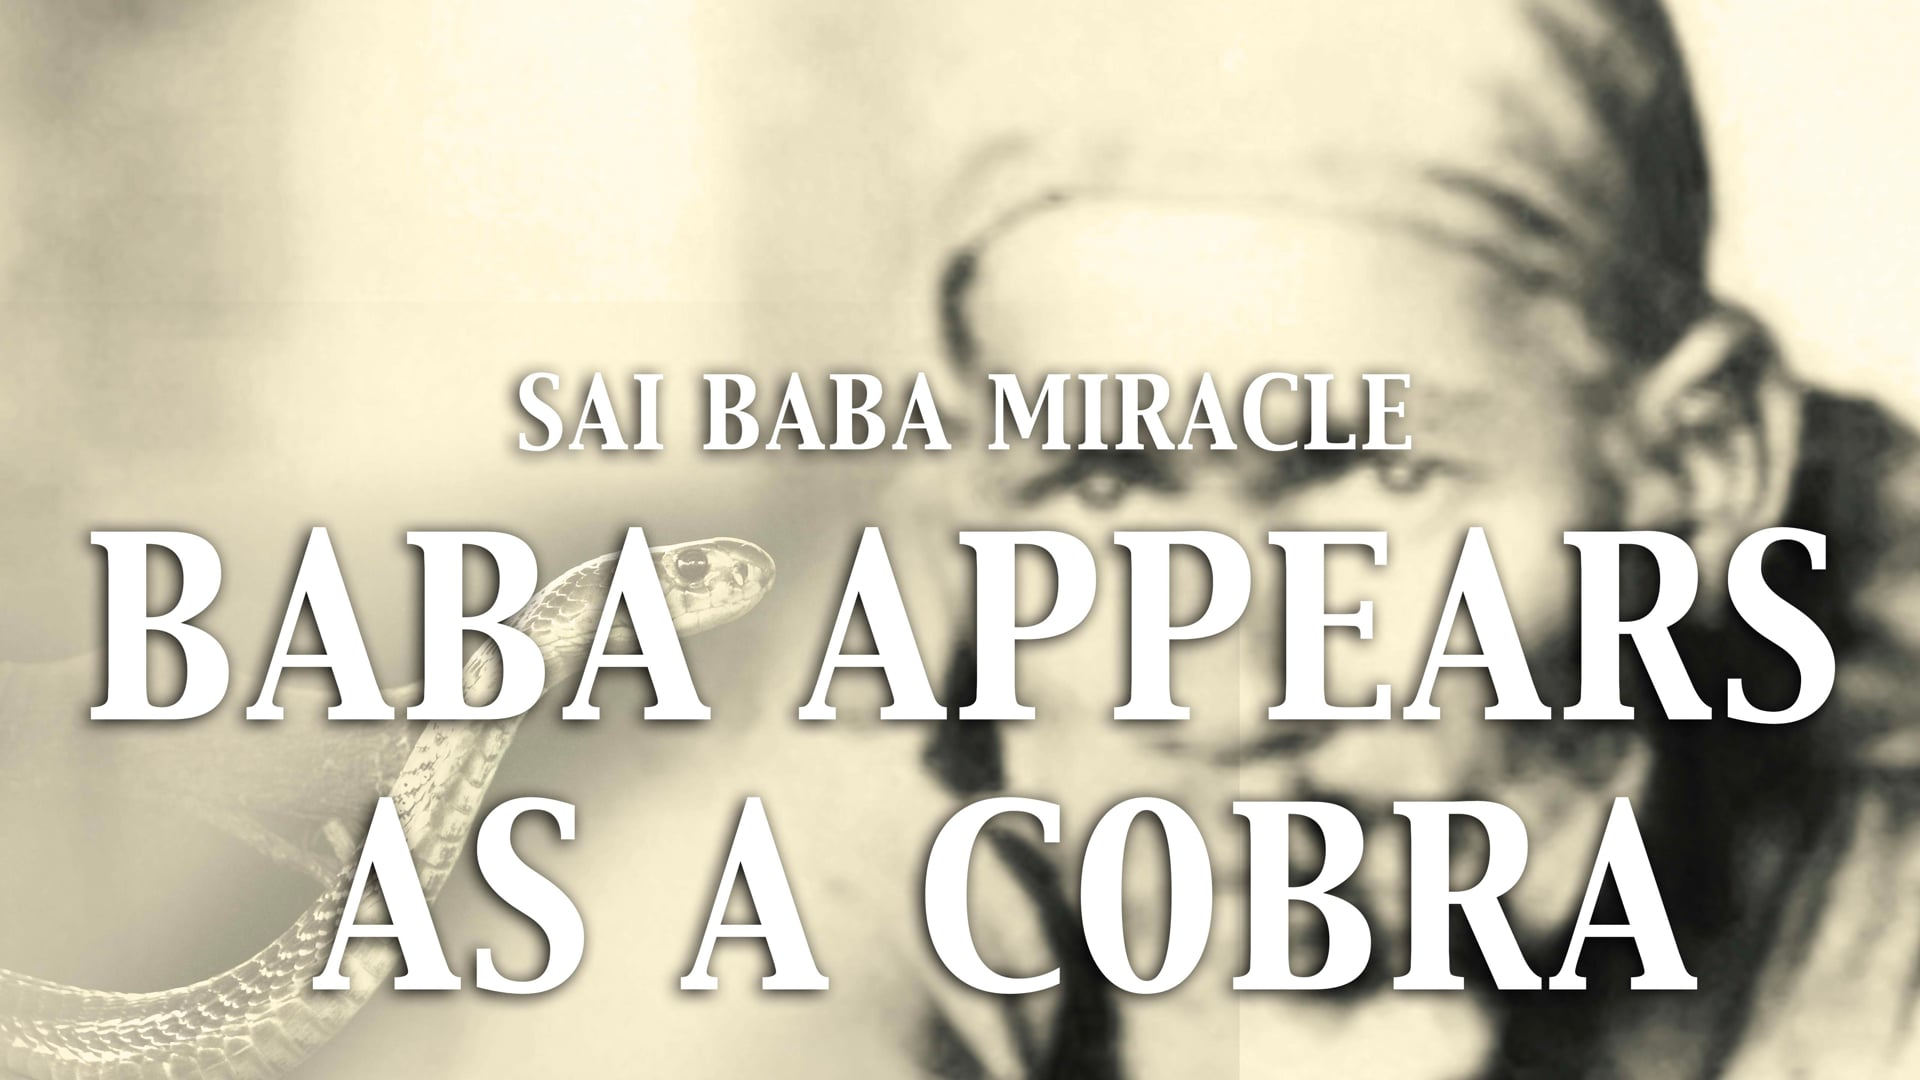 Baba appears as a cobra